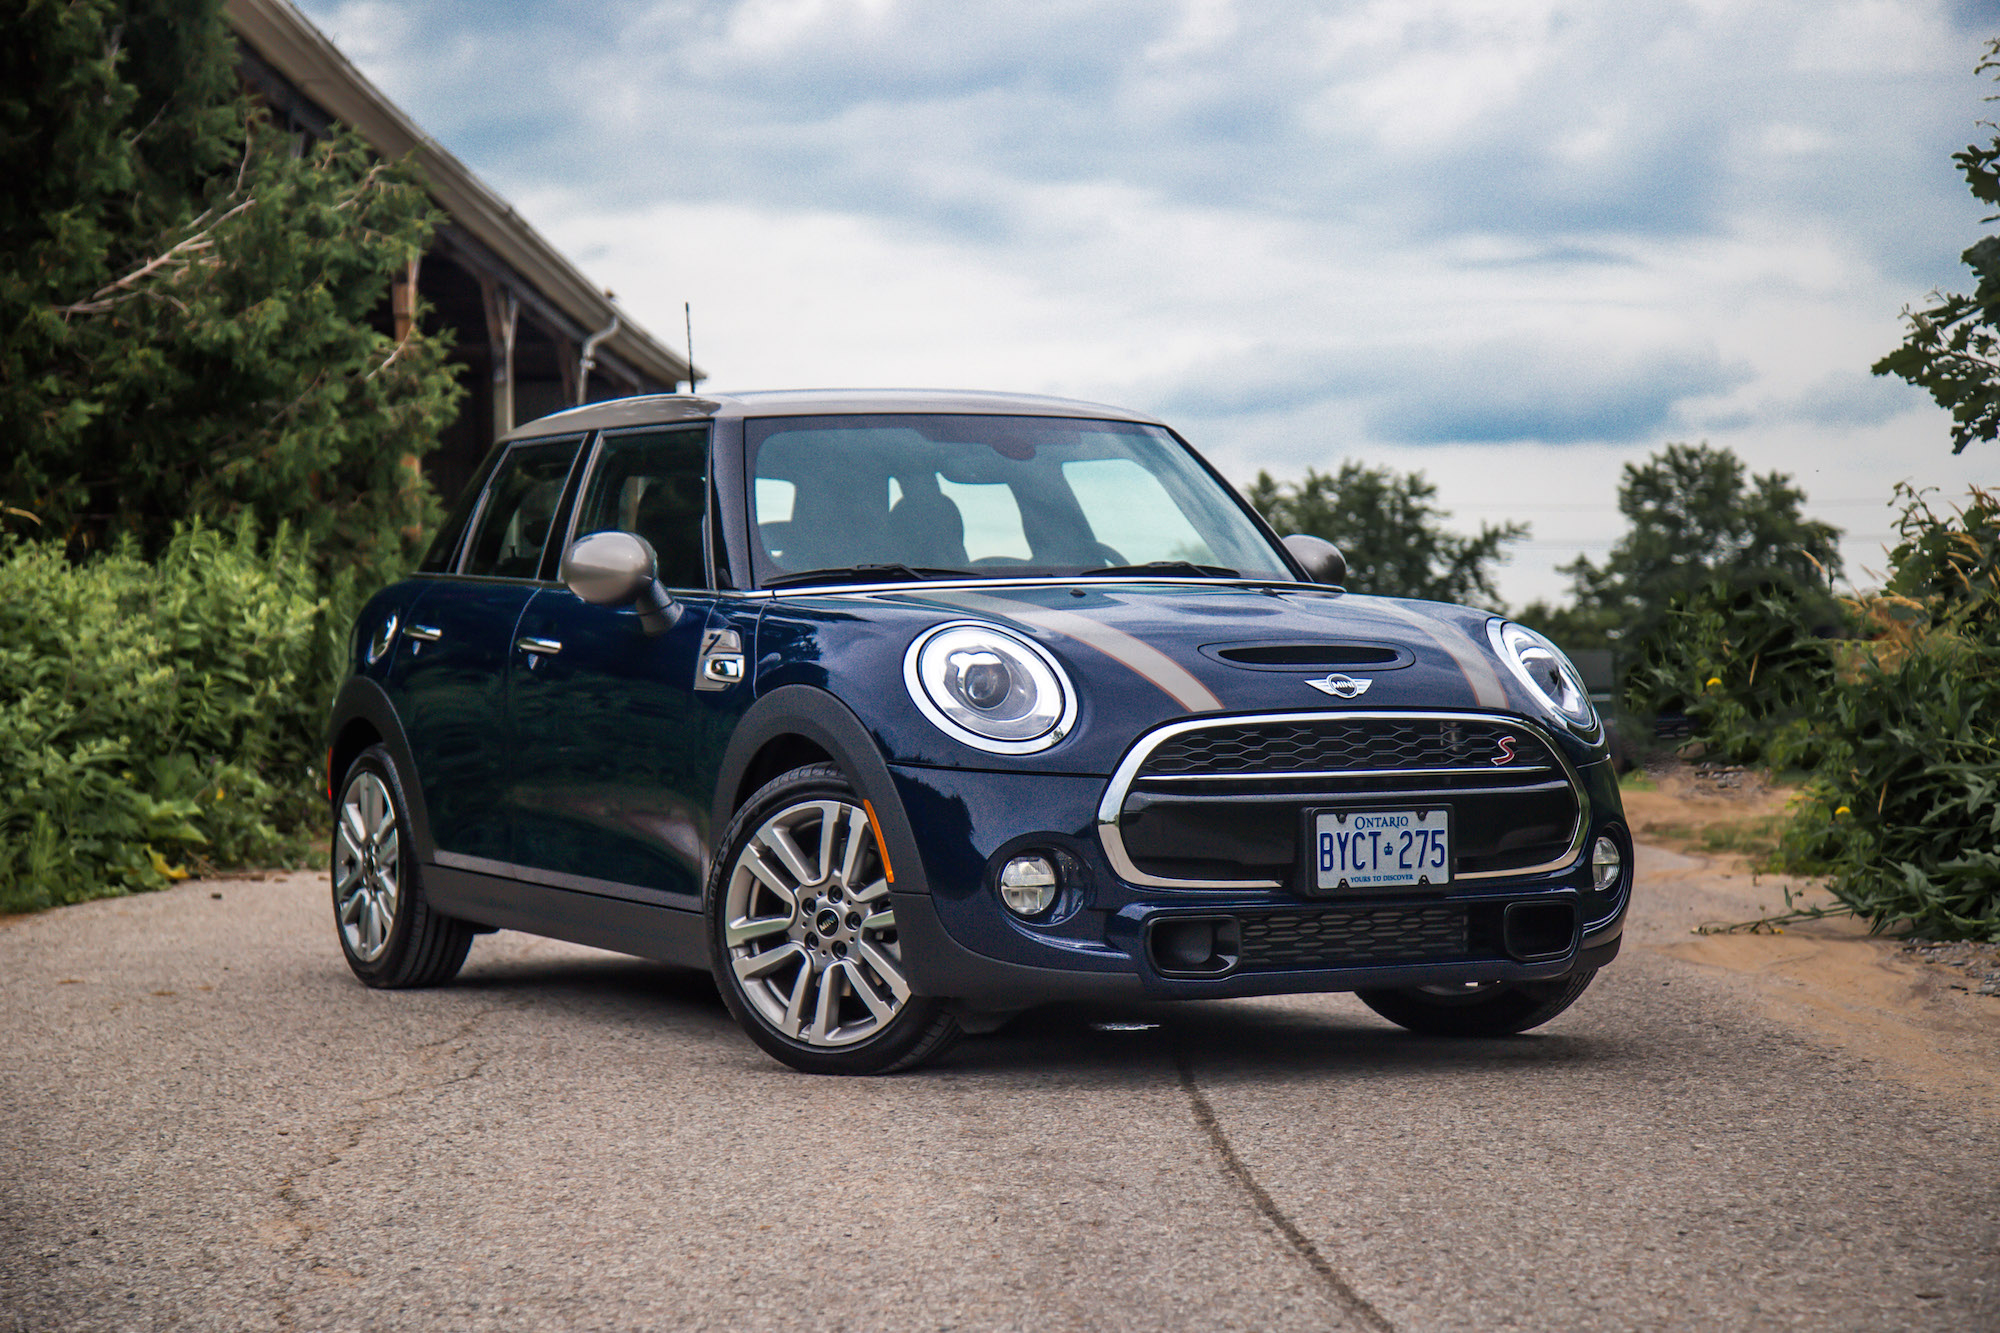 review 2017 mini cooper s 5 door seven edition canadian auto review. Black Bedroom Furniture Sets. Home Design Ideas